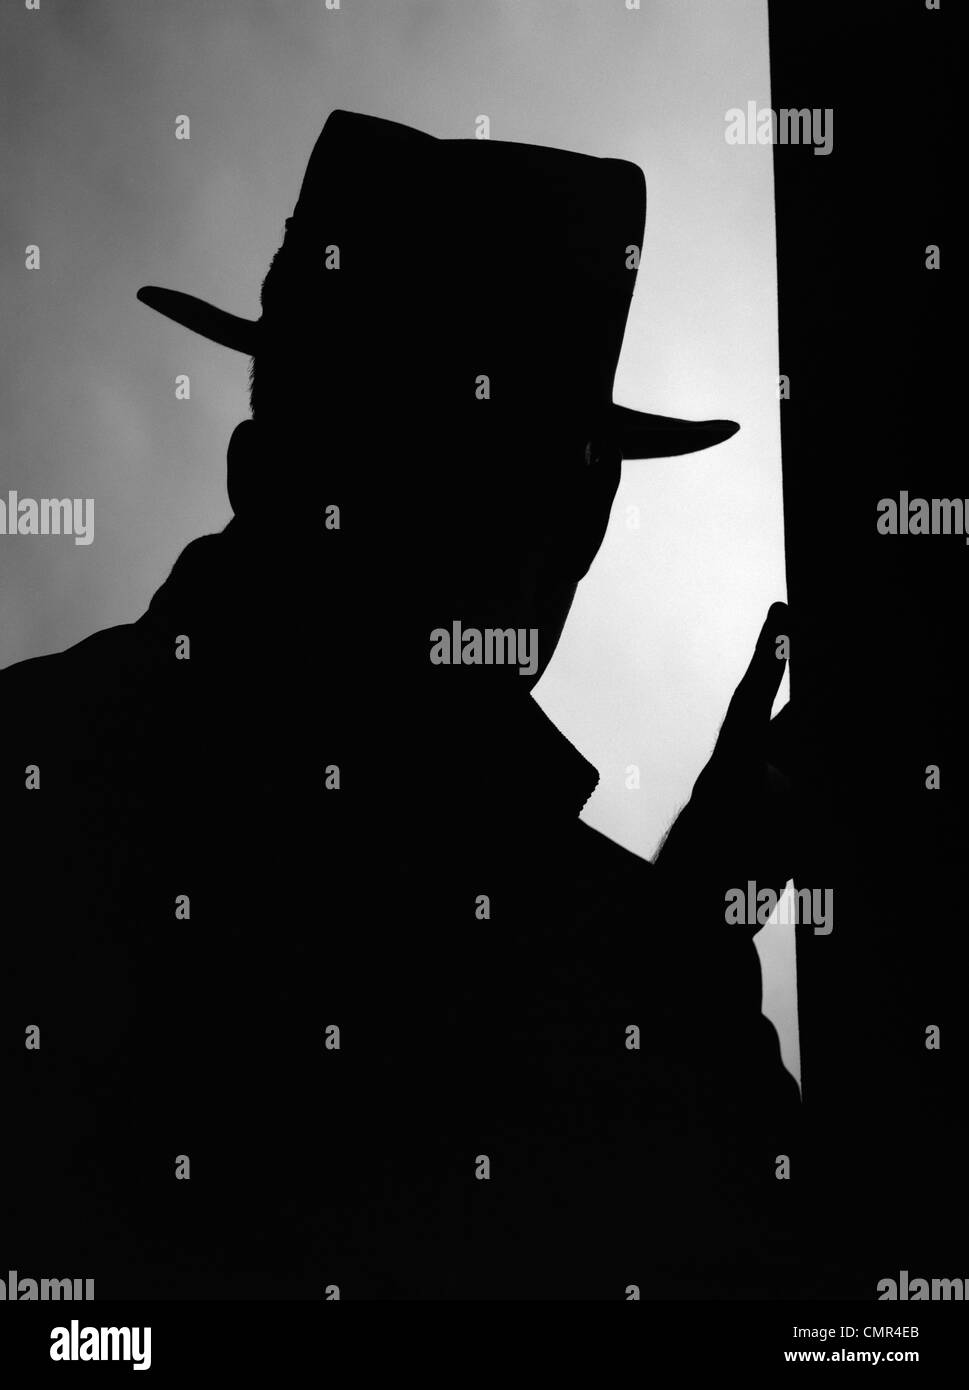 1950s SILHOUETTE OF MAN INTRUDER IN HAT AND COAT WITH ONE HAND ON A DOOR FRAME - Stock Image